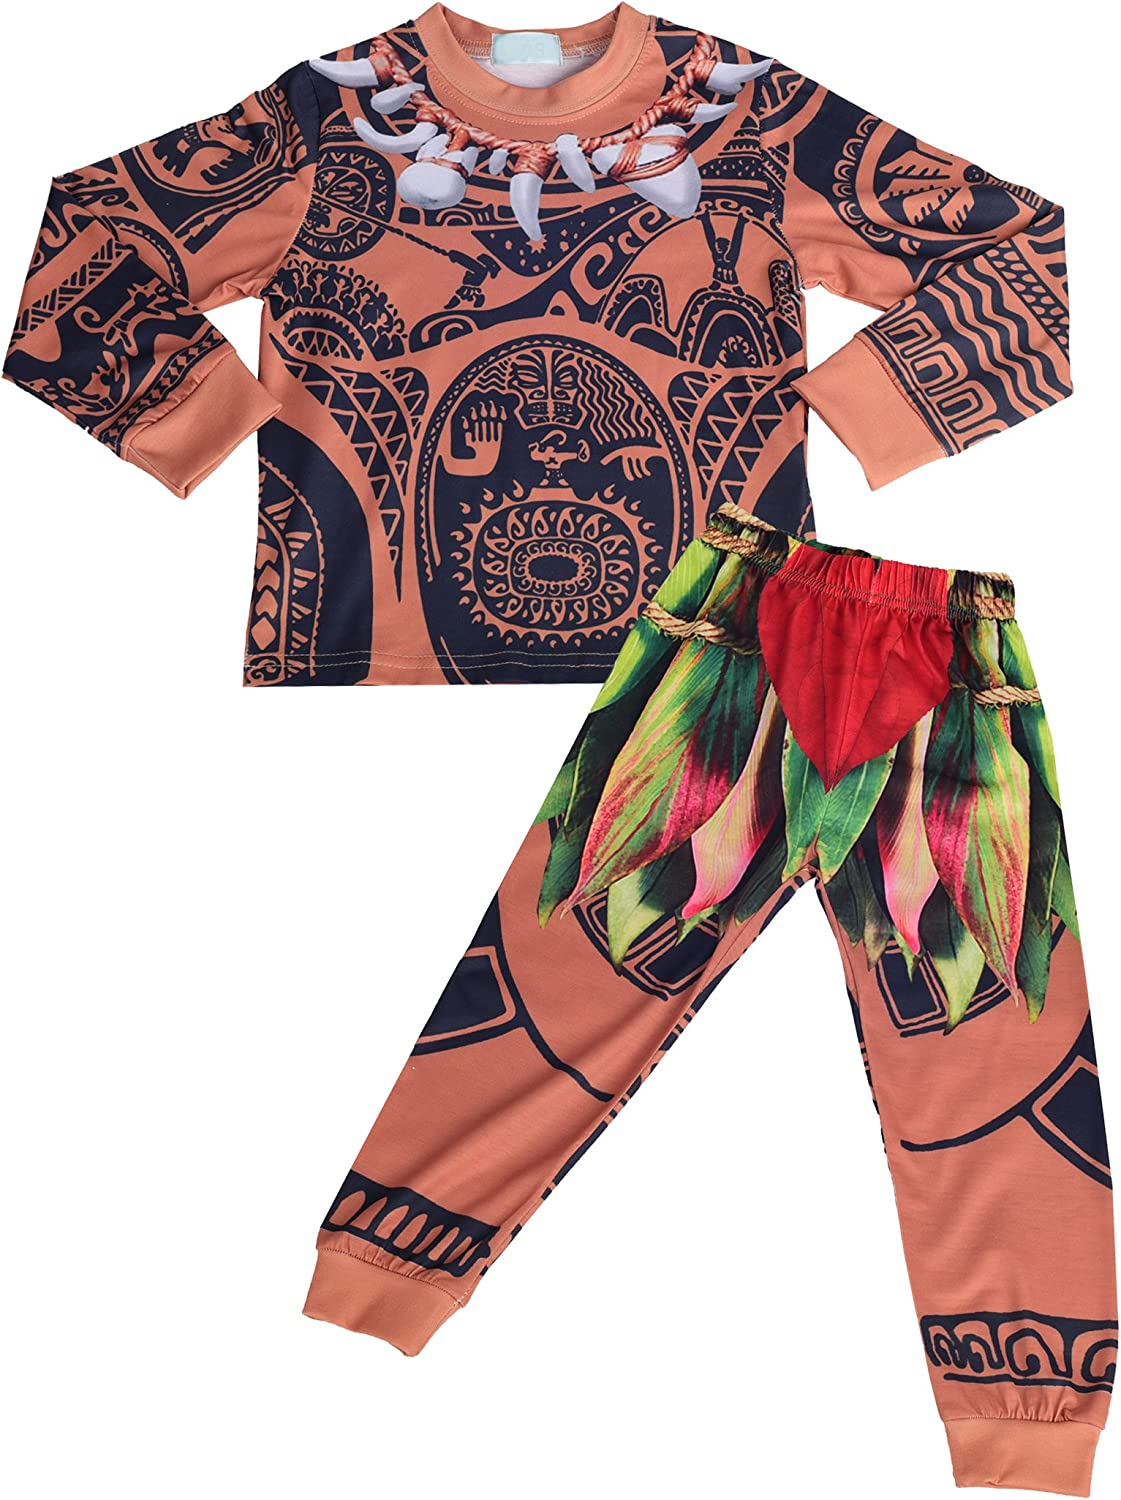 Dressy Daisy Boys Maui Pajamas Halloween Dress Up Costumes Fancy Party Outfit